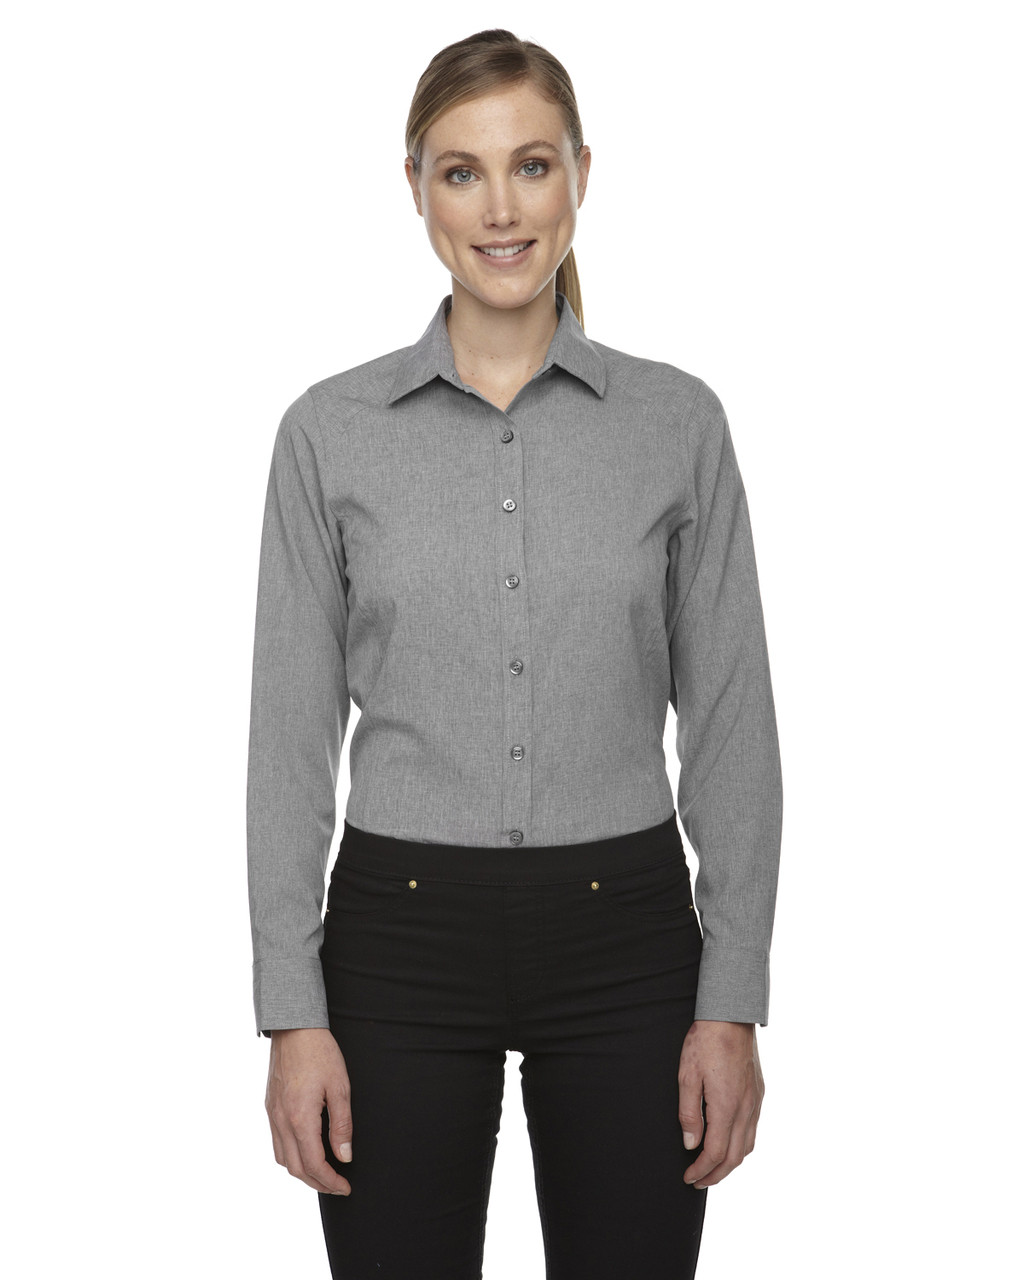 Light Grey Heather - 78802 North End Sport Blue Central Ave Mélange Performance Shirt | Blankclothing.ca